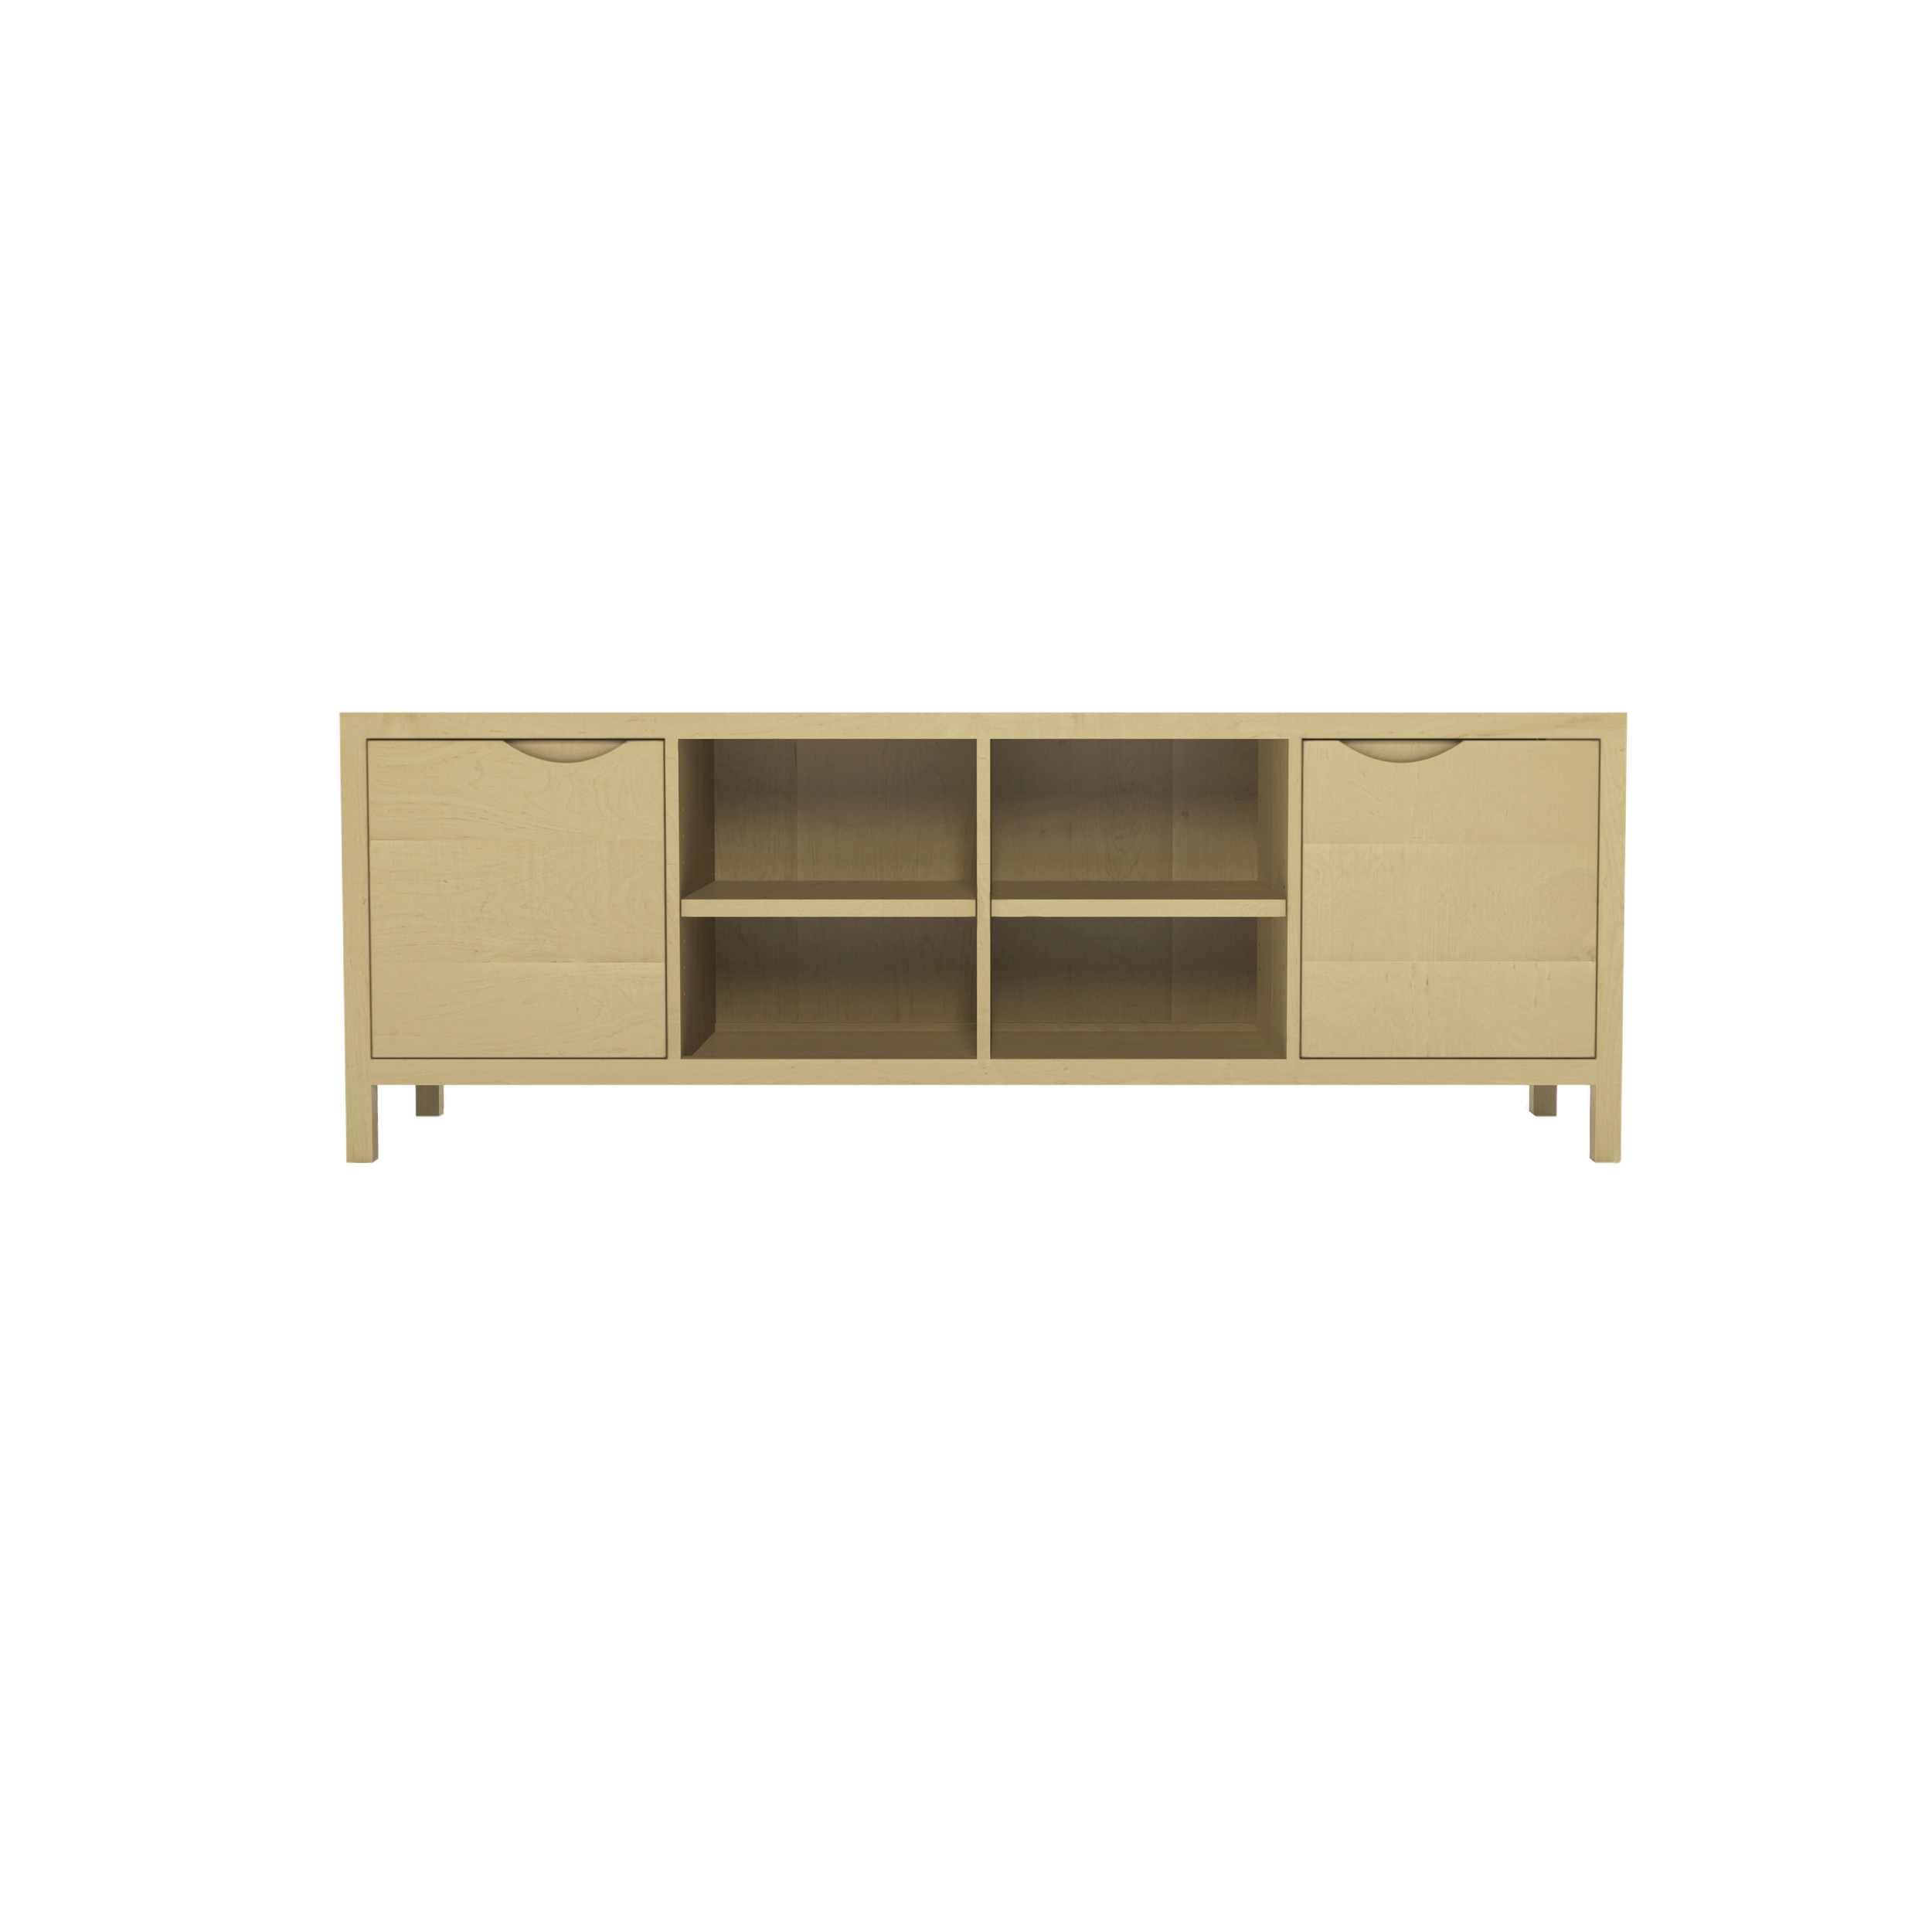 Series 353 Media Cabinet With Two Doors At 72″ In Width